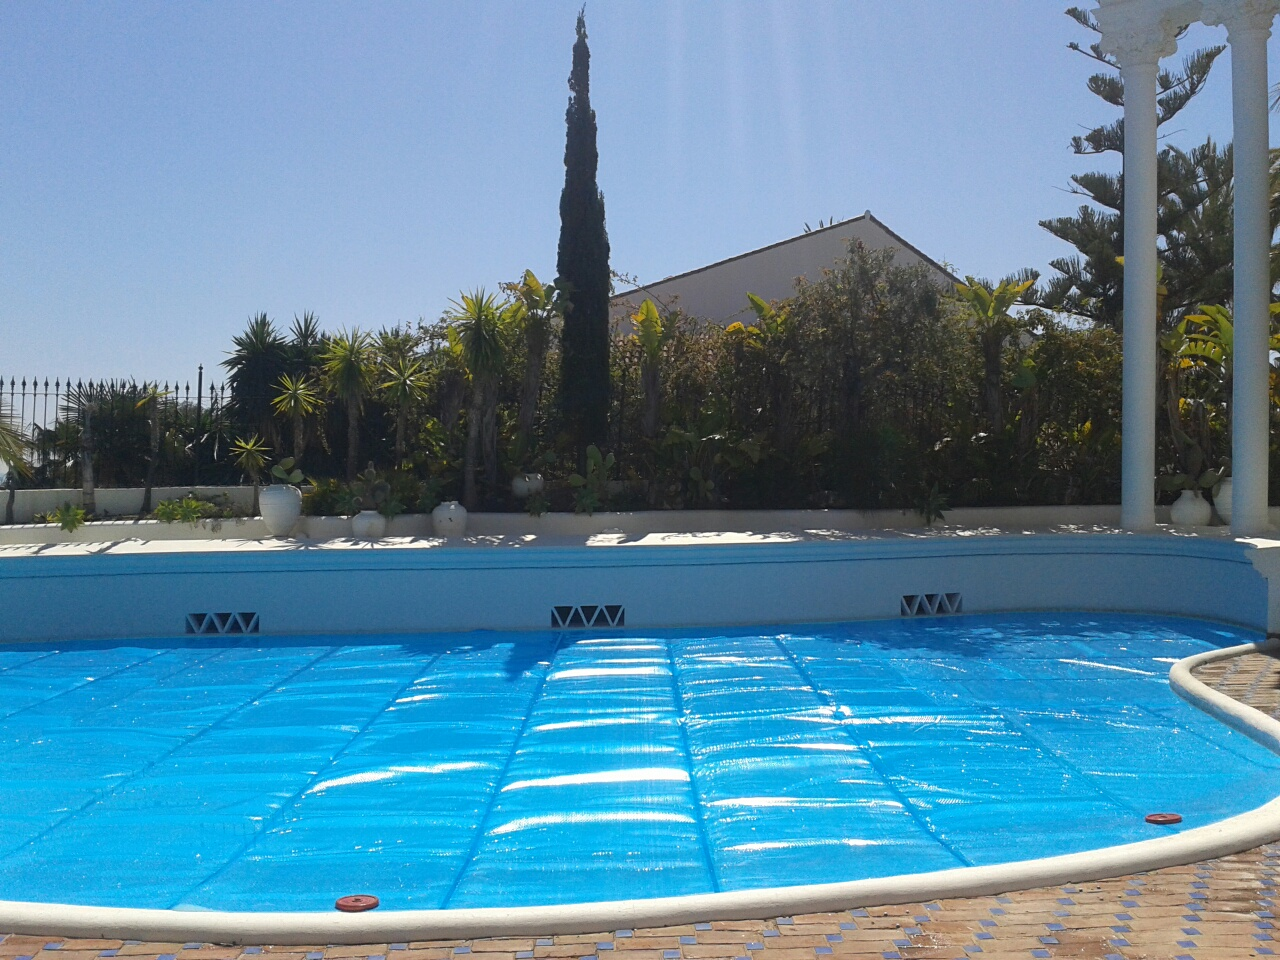 Pool Cover of 87 square metres!